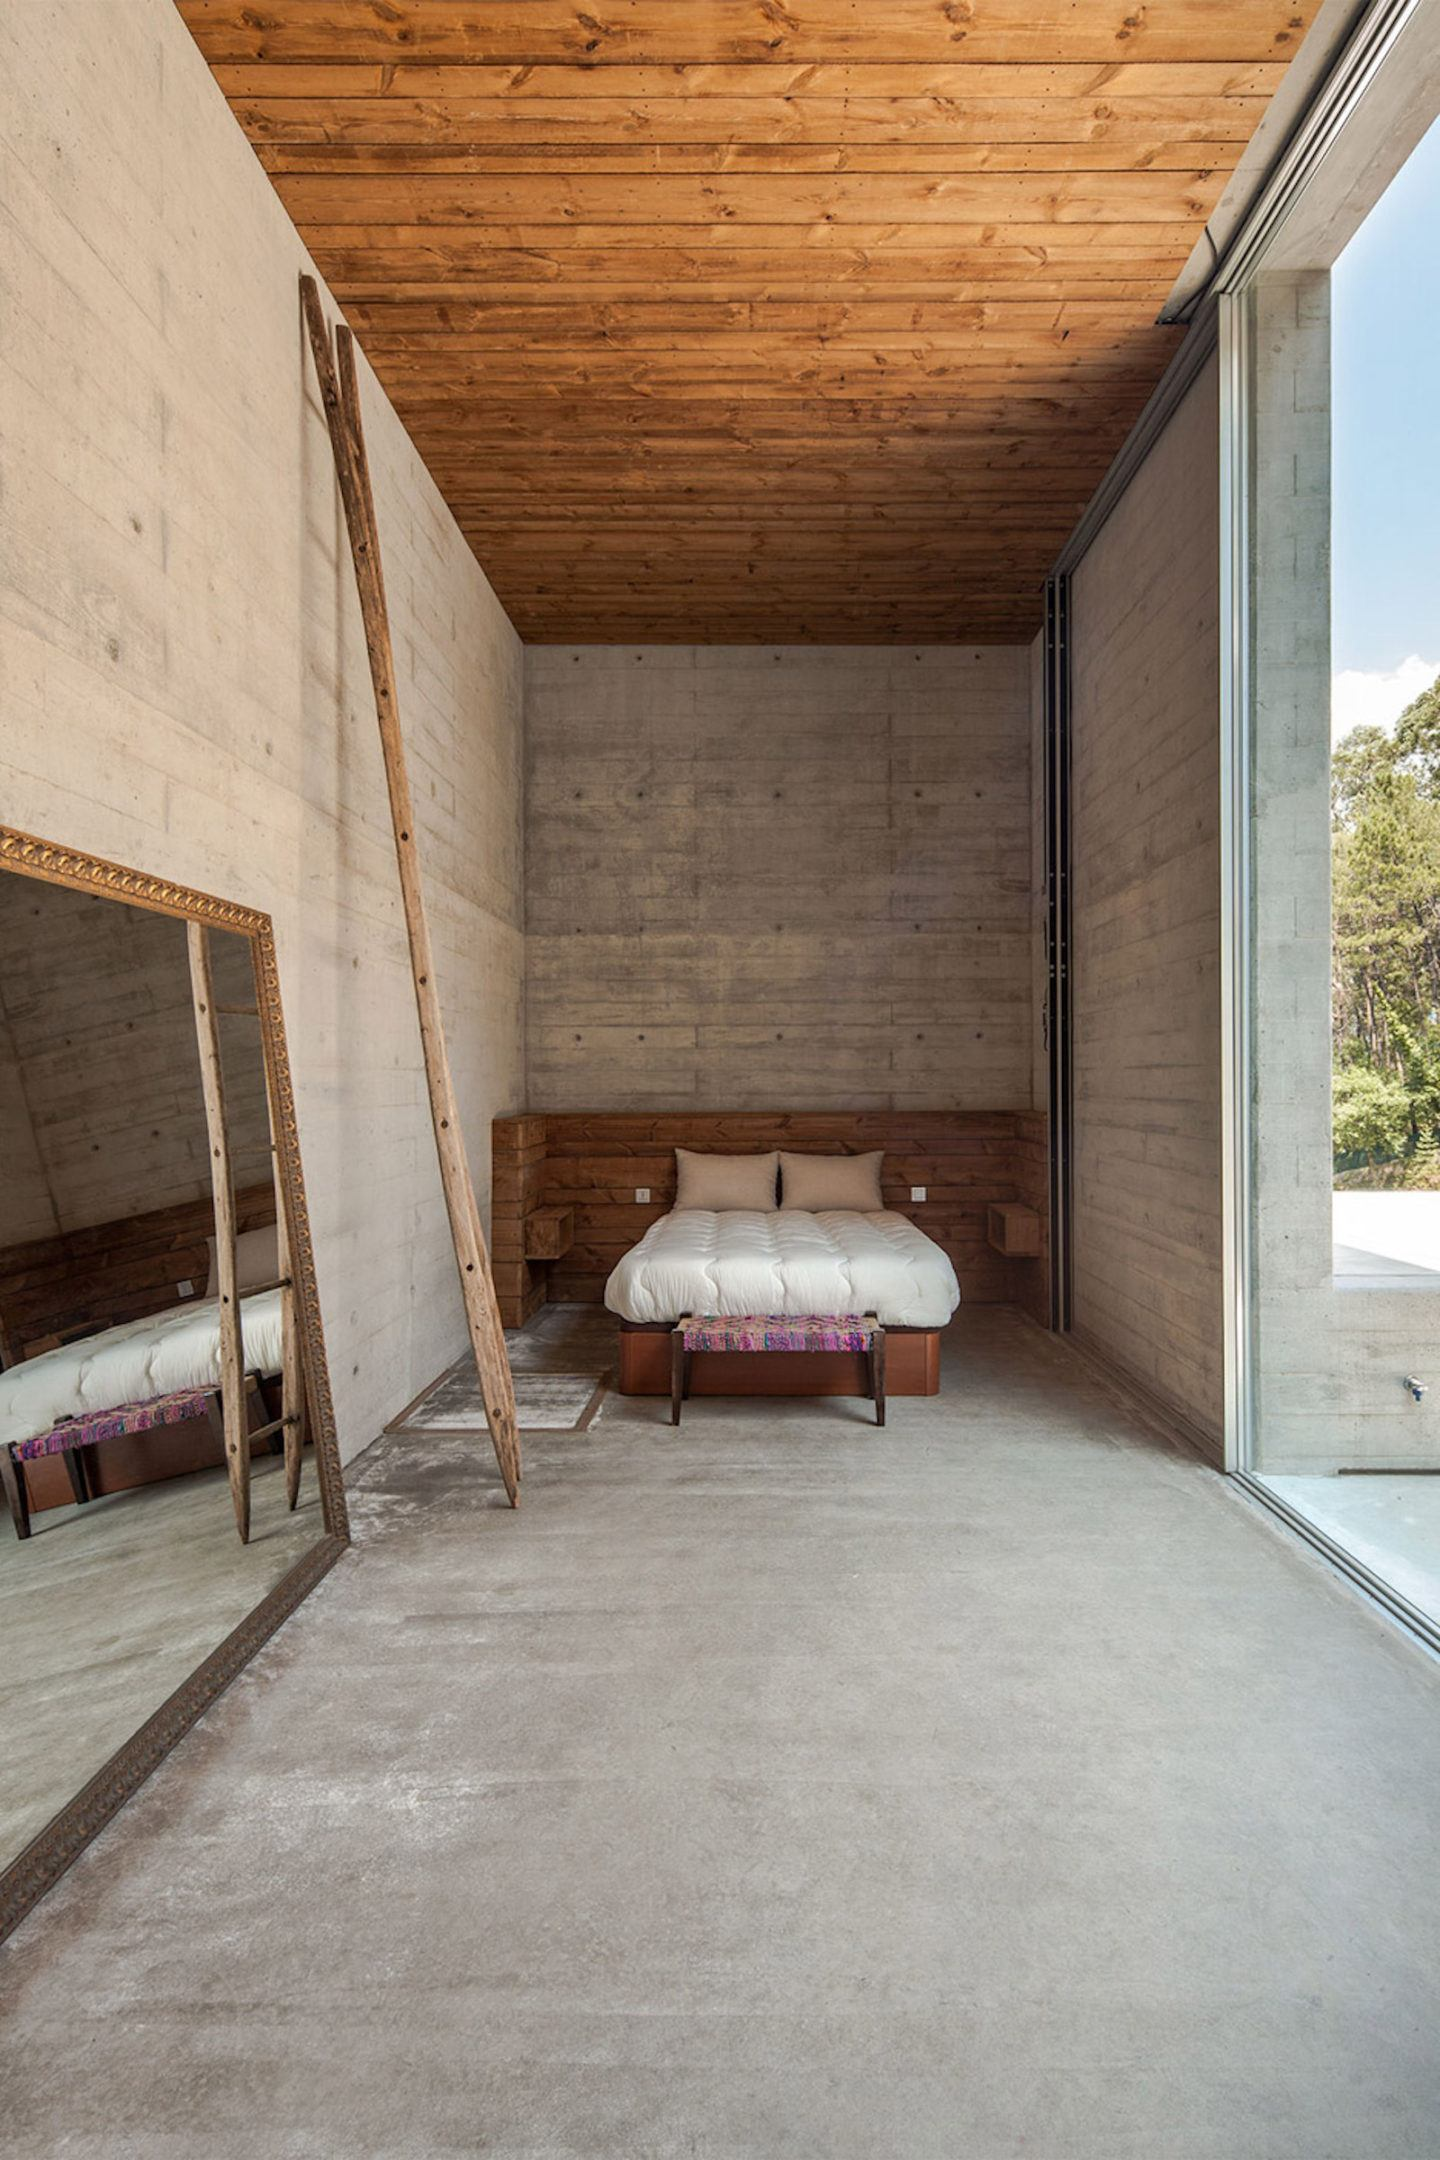 iGNANT-Architecture-Carvalho-Araujo-Geres-House-007a